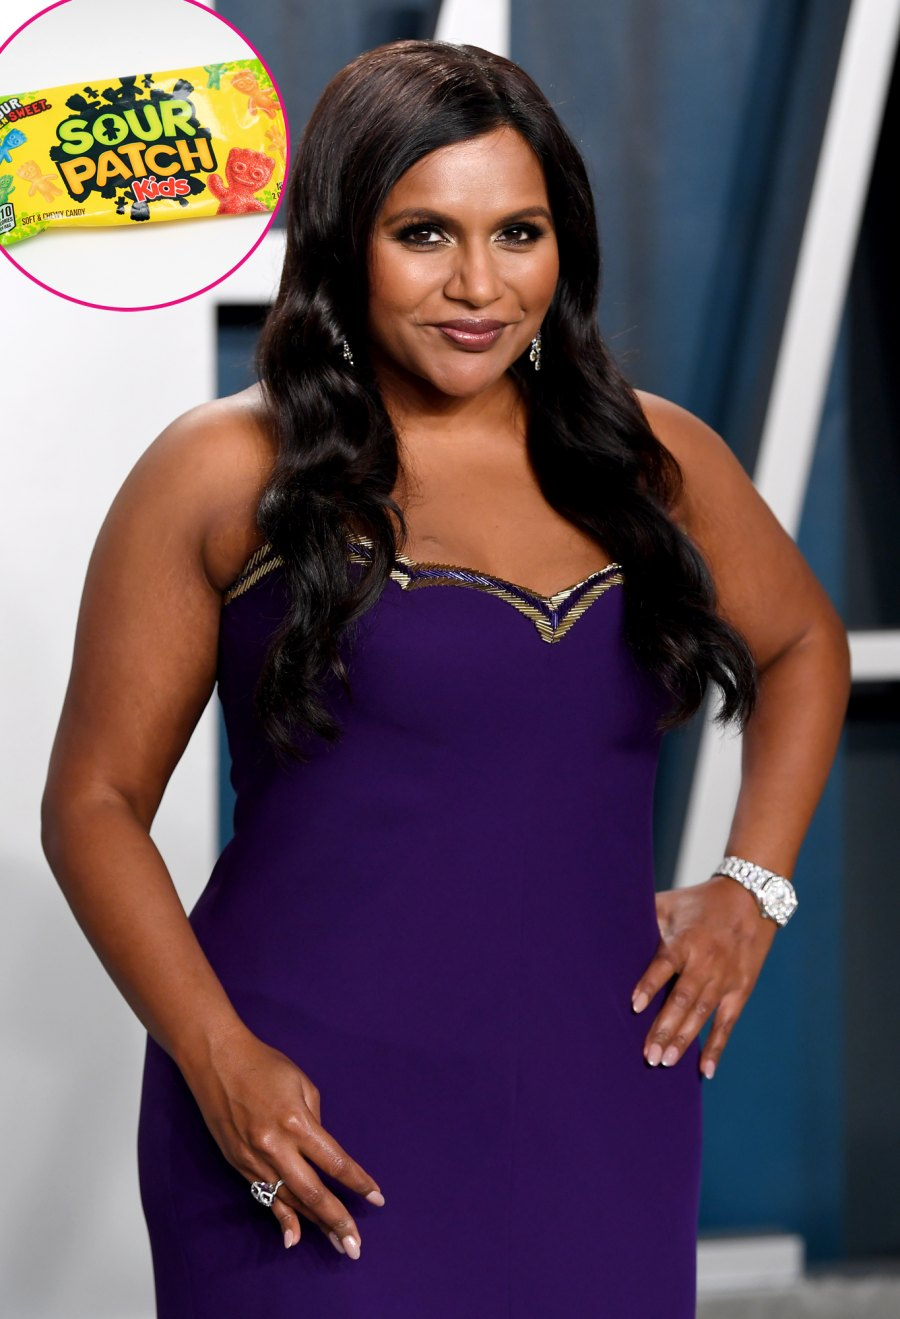 Celebrities Favorite Halloween Candy Mindy Kaling Sour Patch Kids